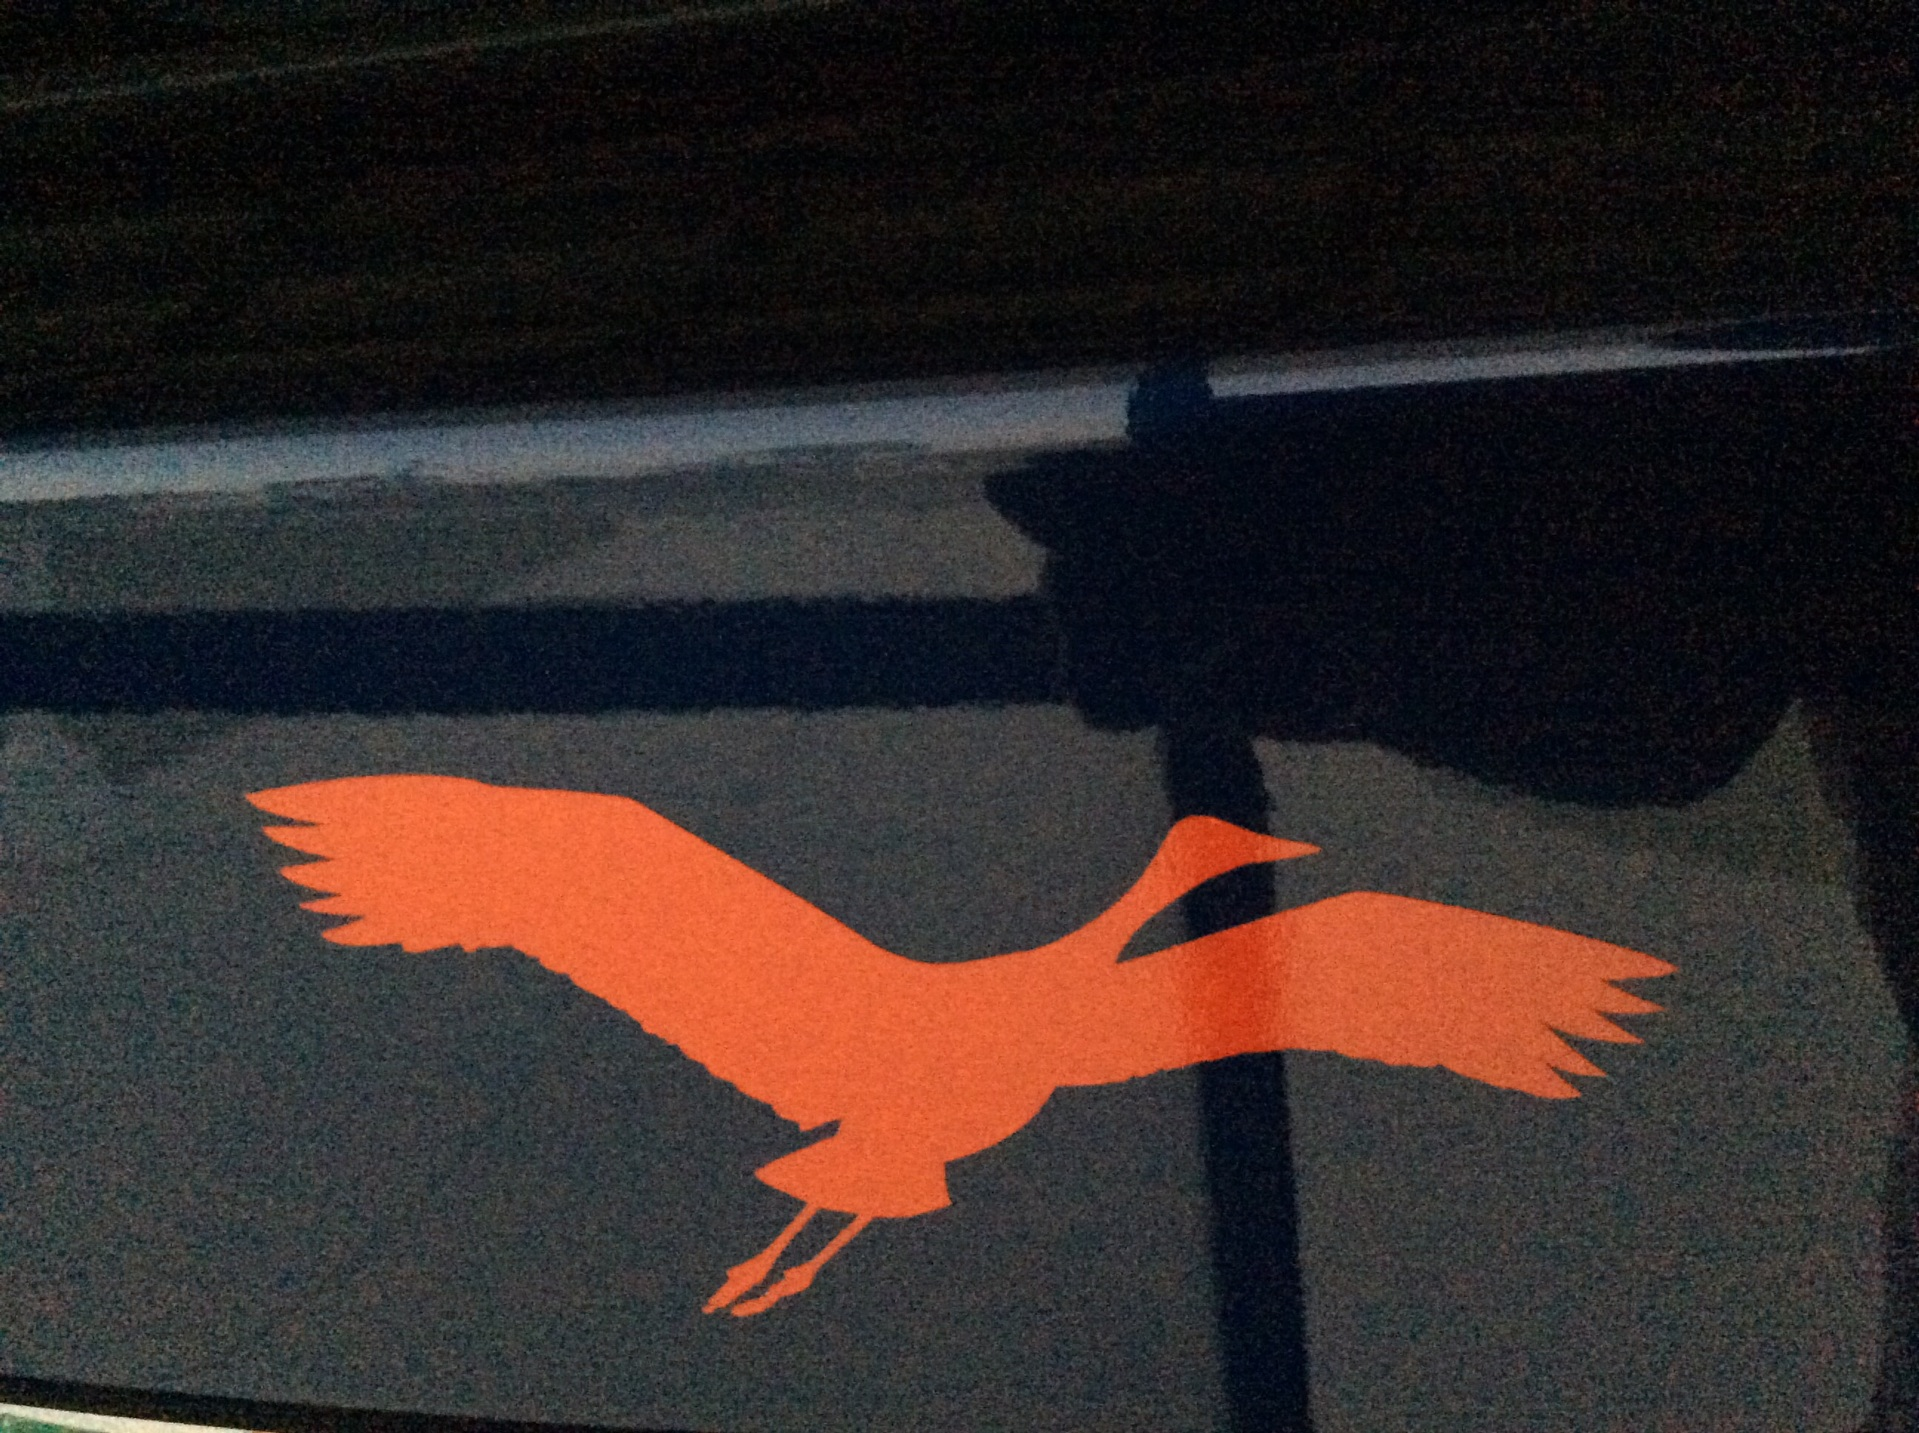 Jane's photograph of their Crane Flying Sticker